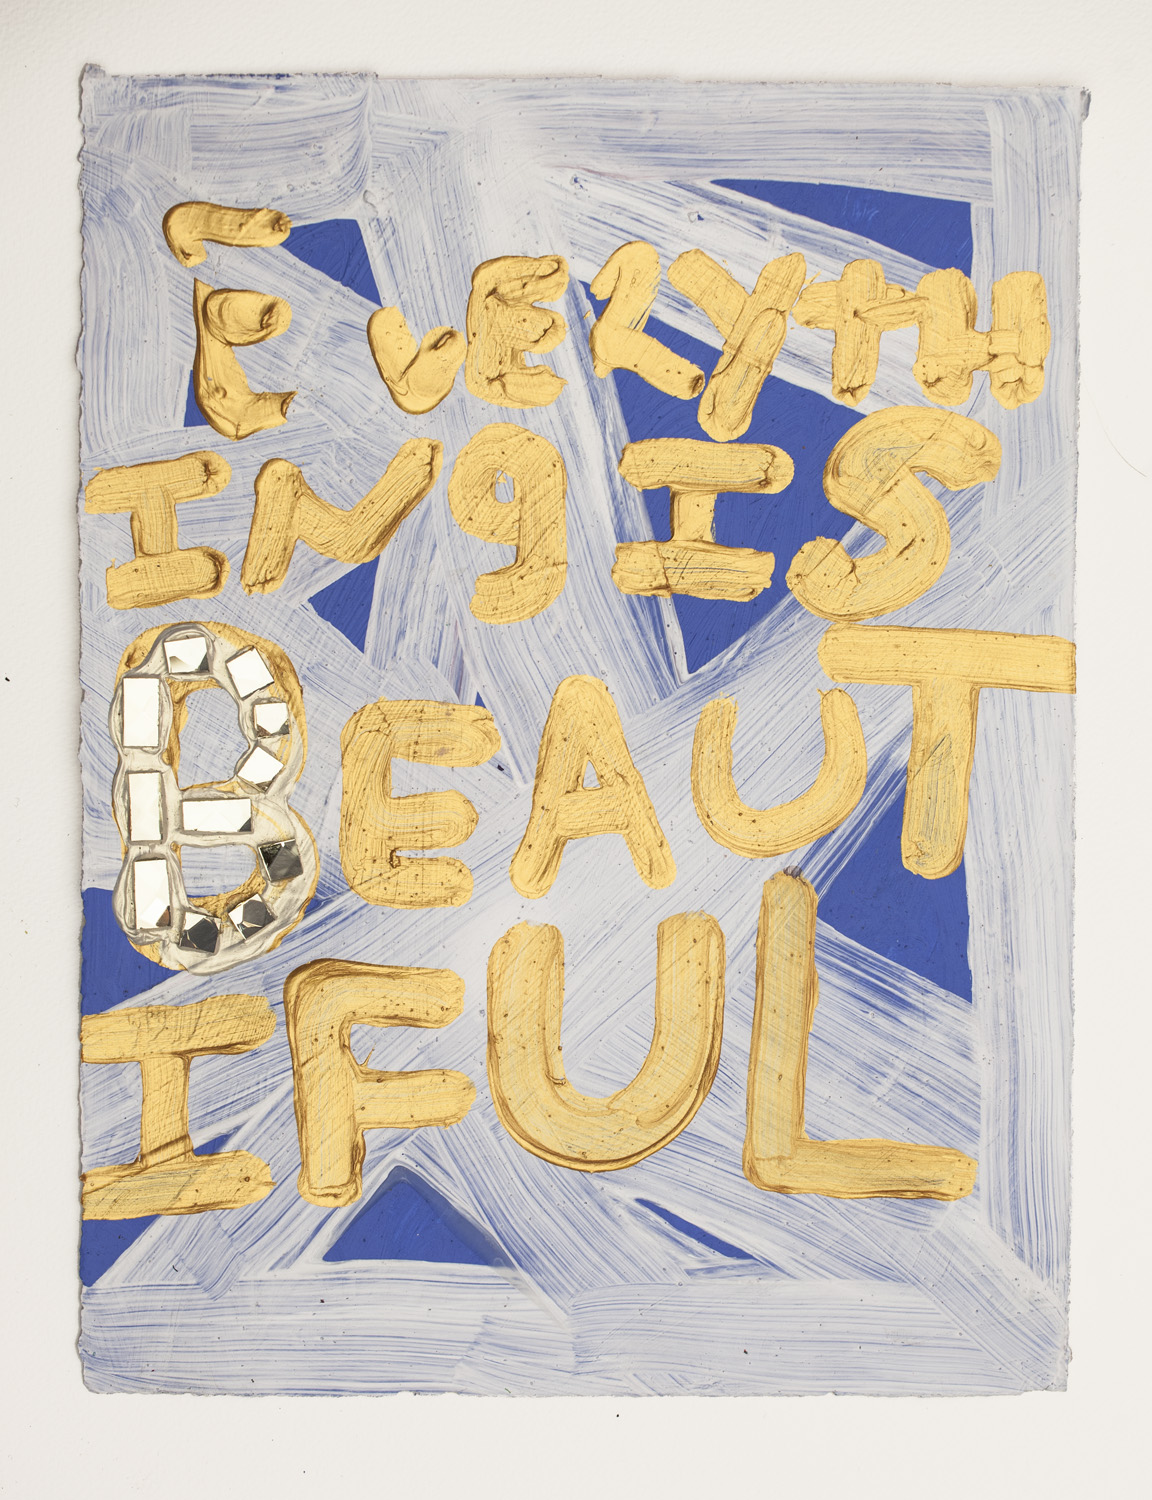 """Samuel Jablon, """"Everything is Beautiful"""" (2015), acrylic and glass tile on paper, 15 x 11 in"""